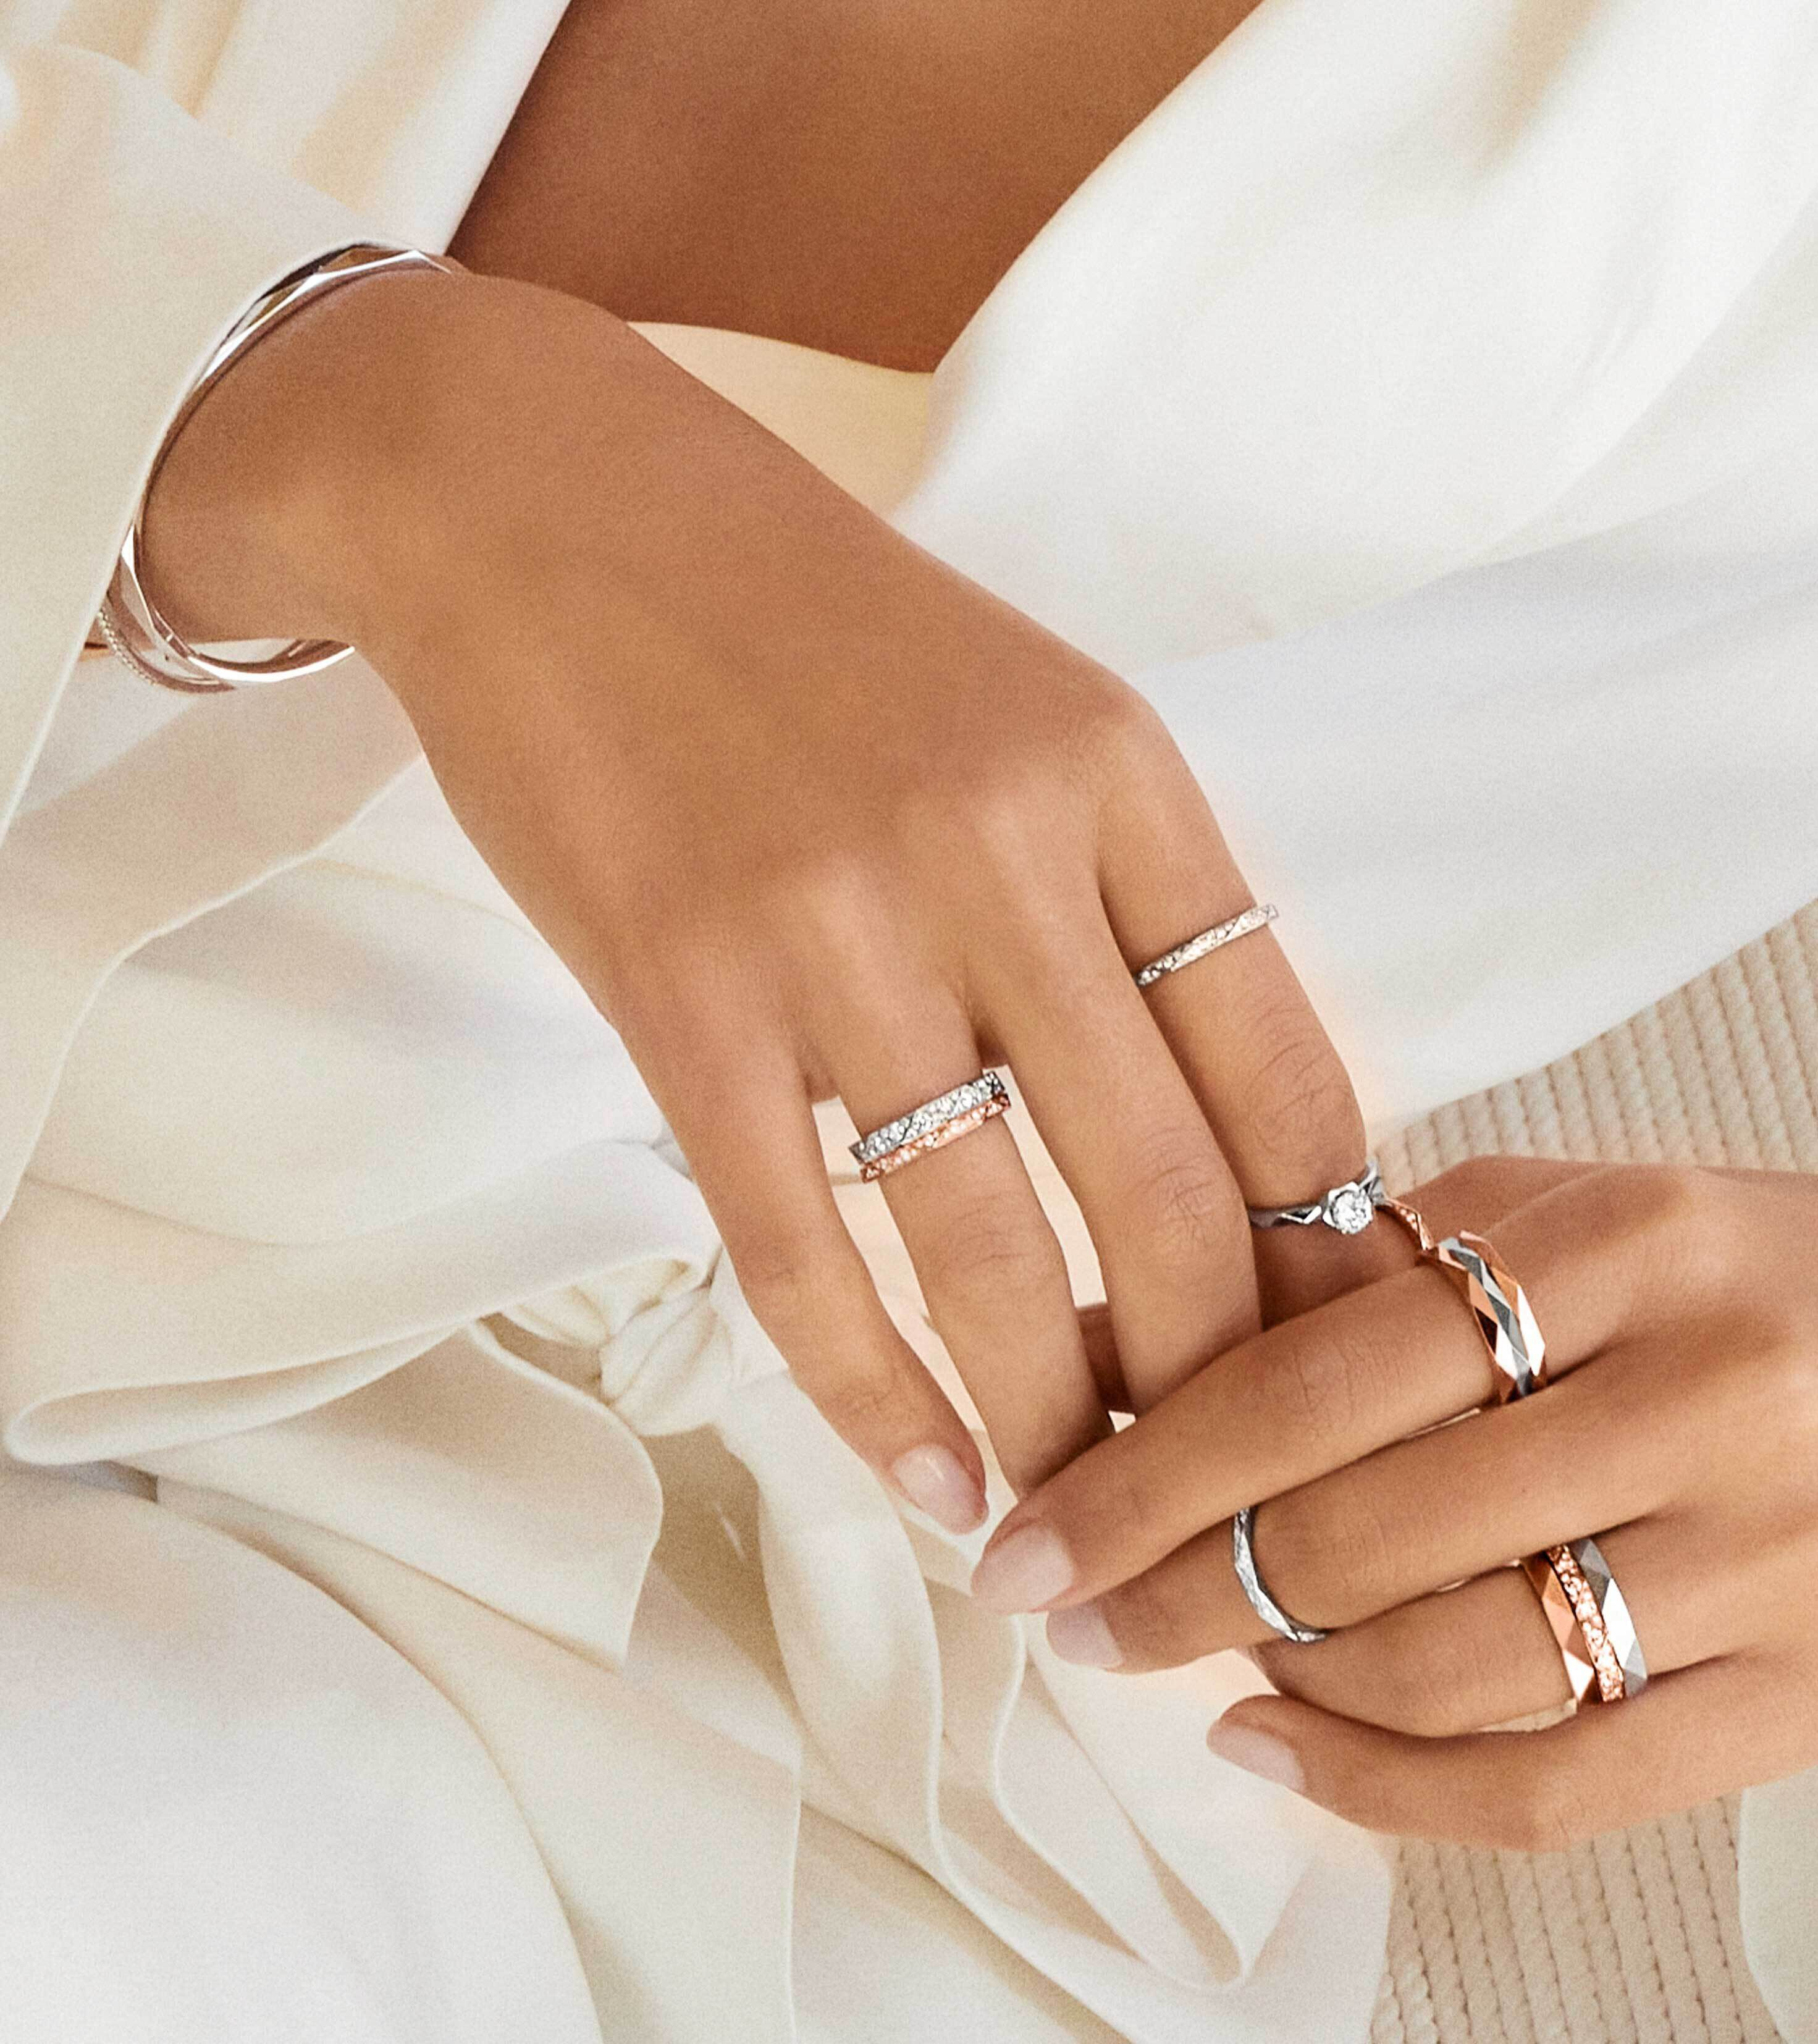 Close up of a model's hand wearing Laurence Graff Signature jewellery collection rings